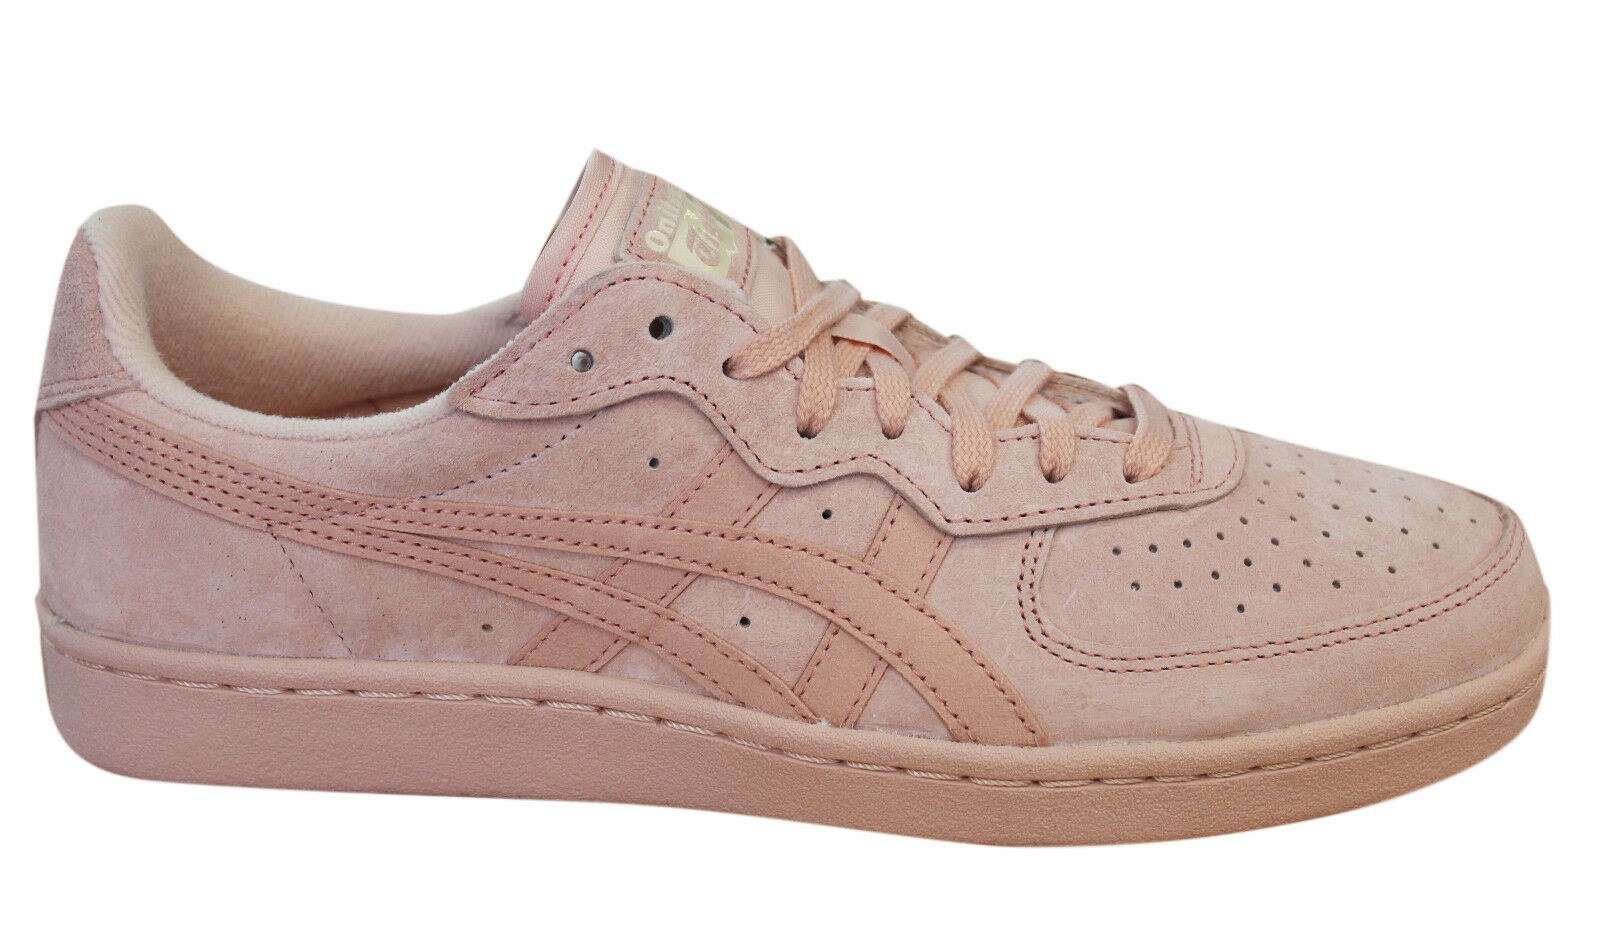 Asics Onitsuka Tiger GSM Lace Up D5K1L Unisex Trainers Pink Suede D5K1L Up 1717 U45 301ed9